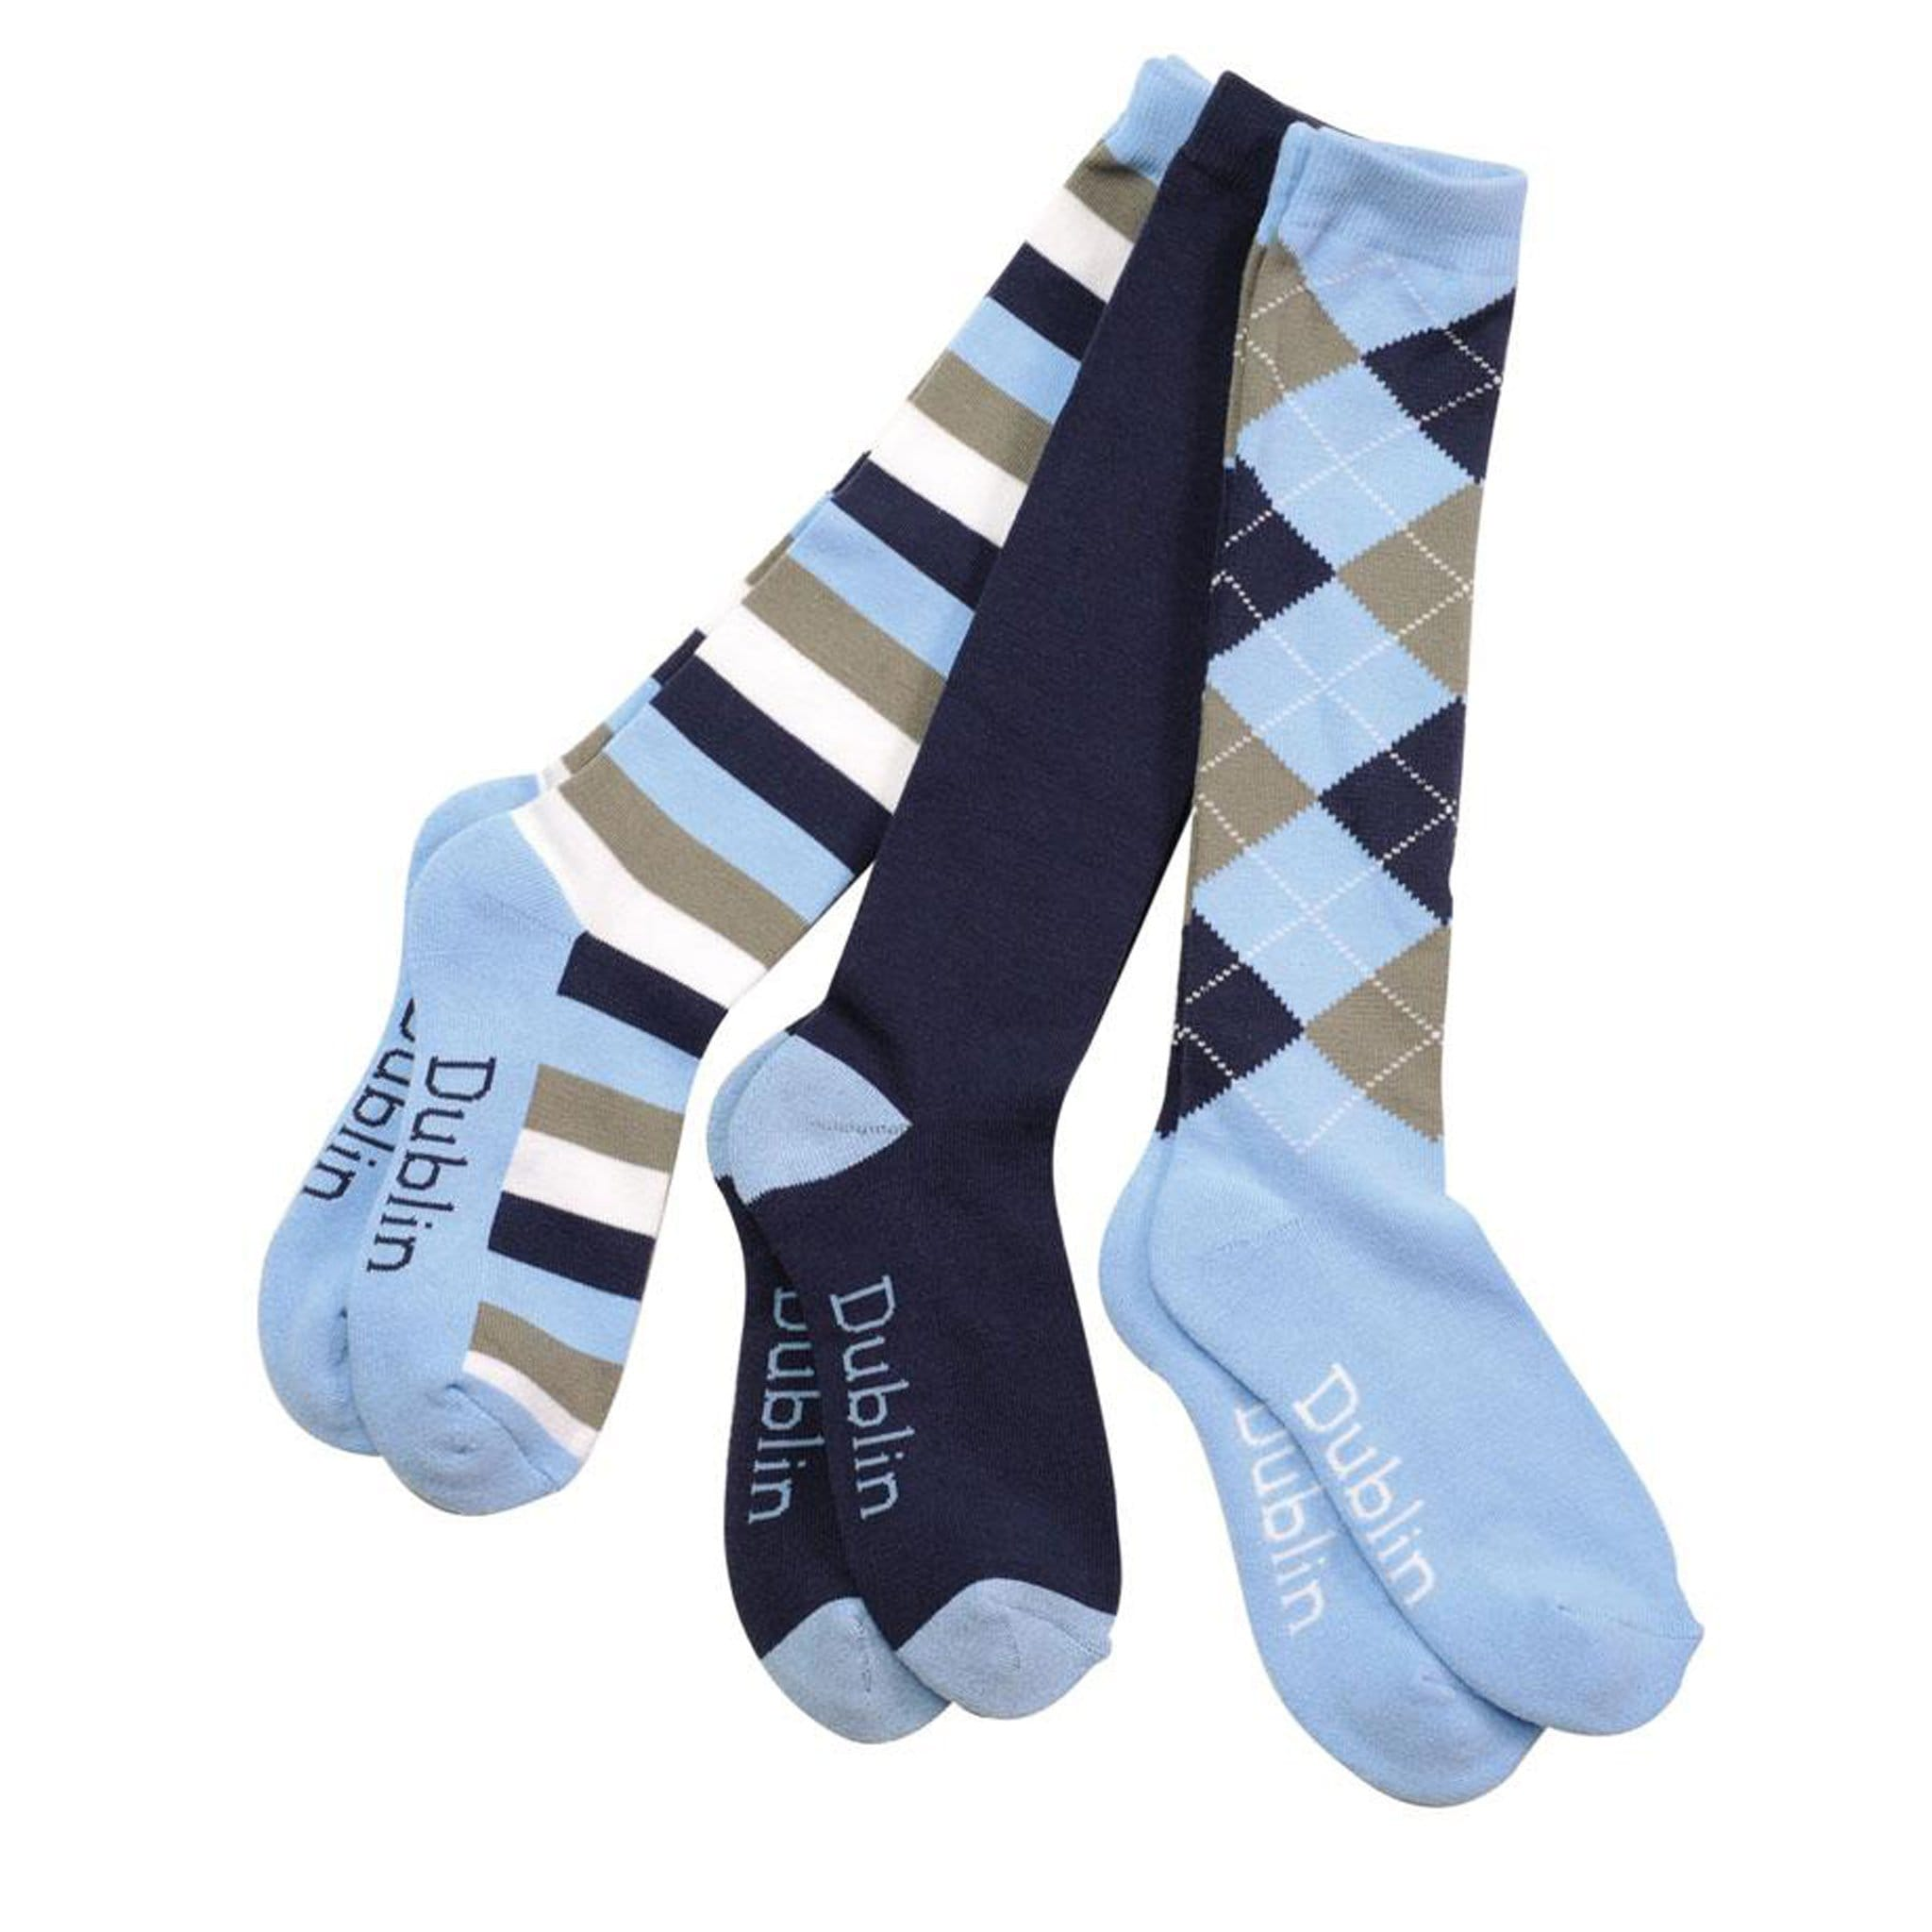 Dublin Riding Socks 3 Pack - Navy Grey Light Blue